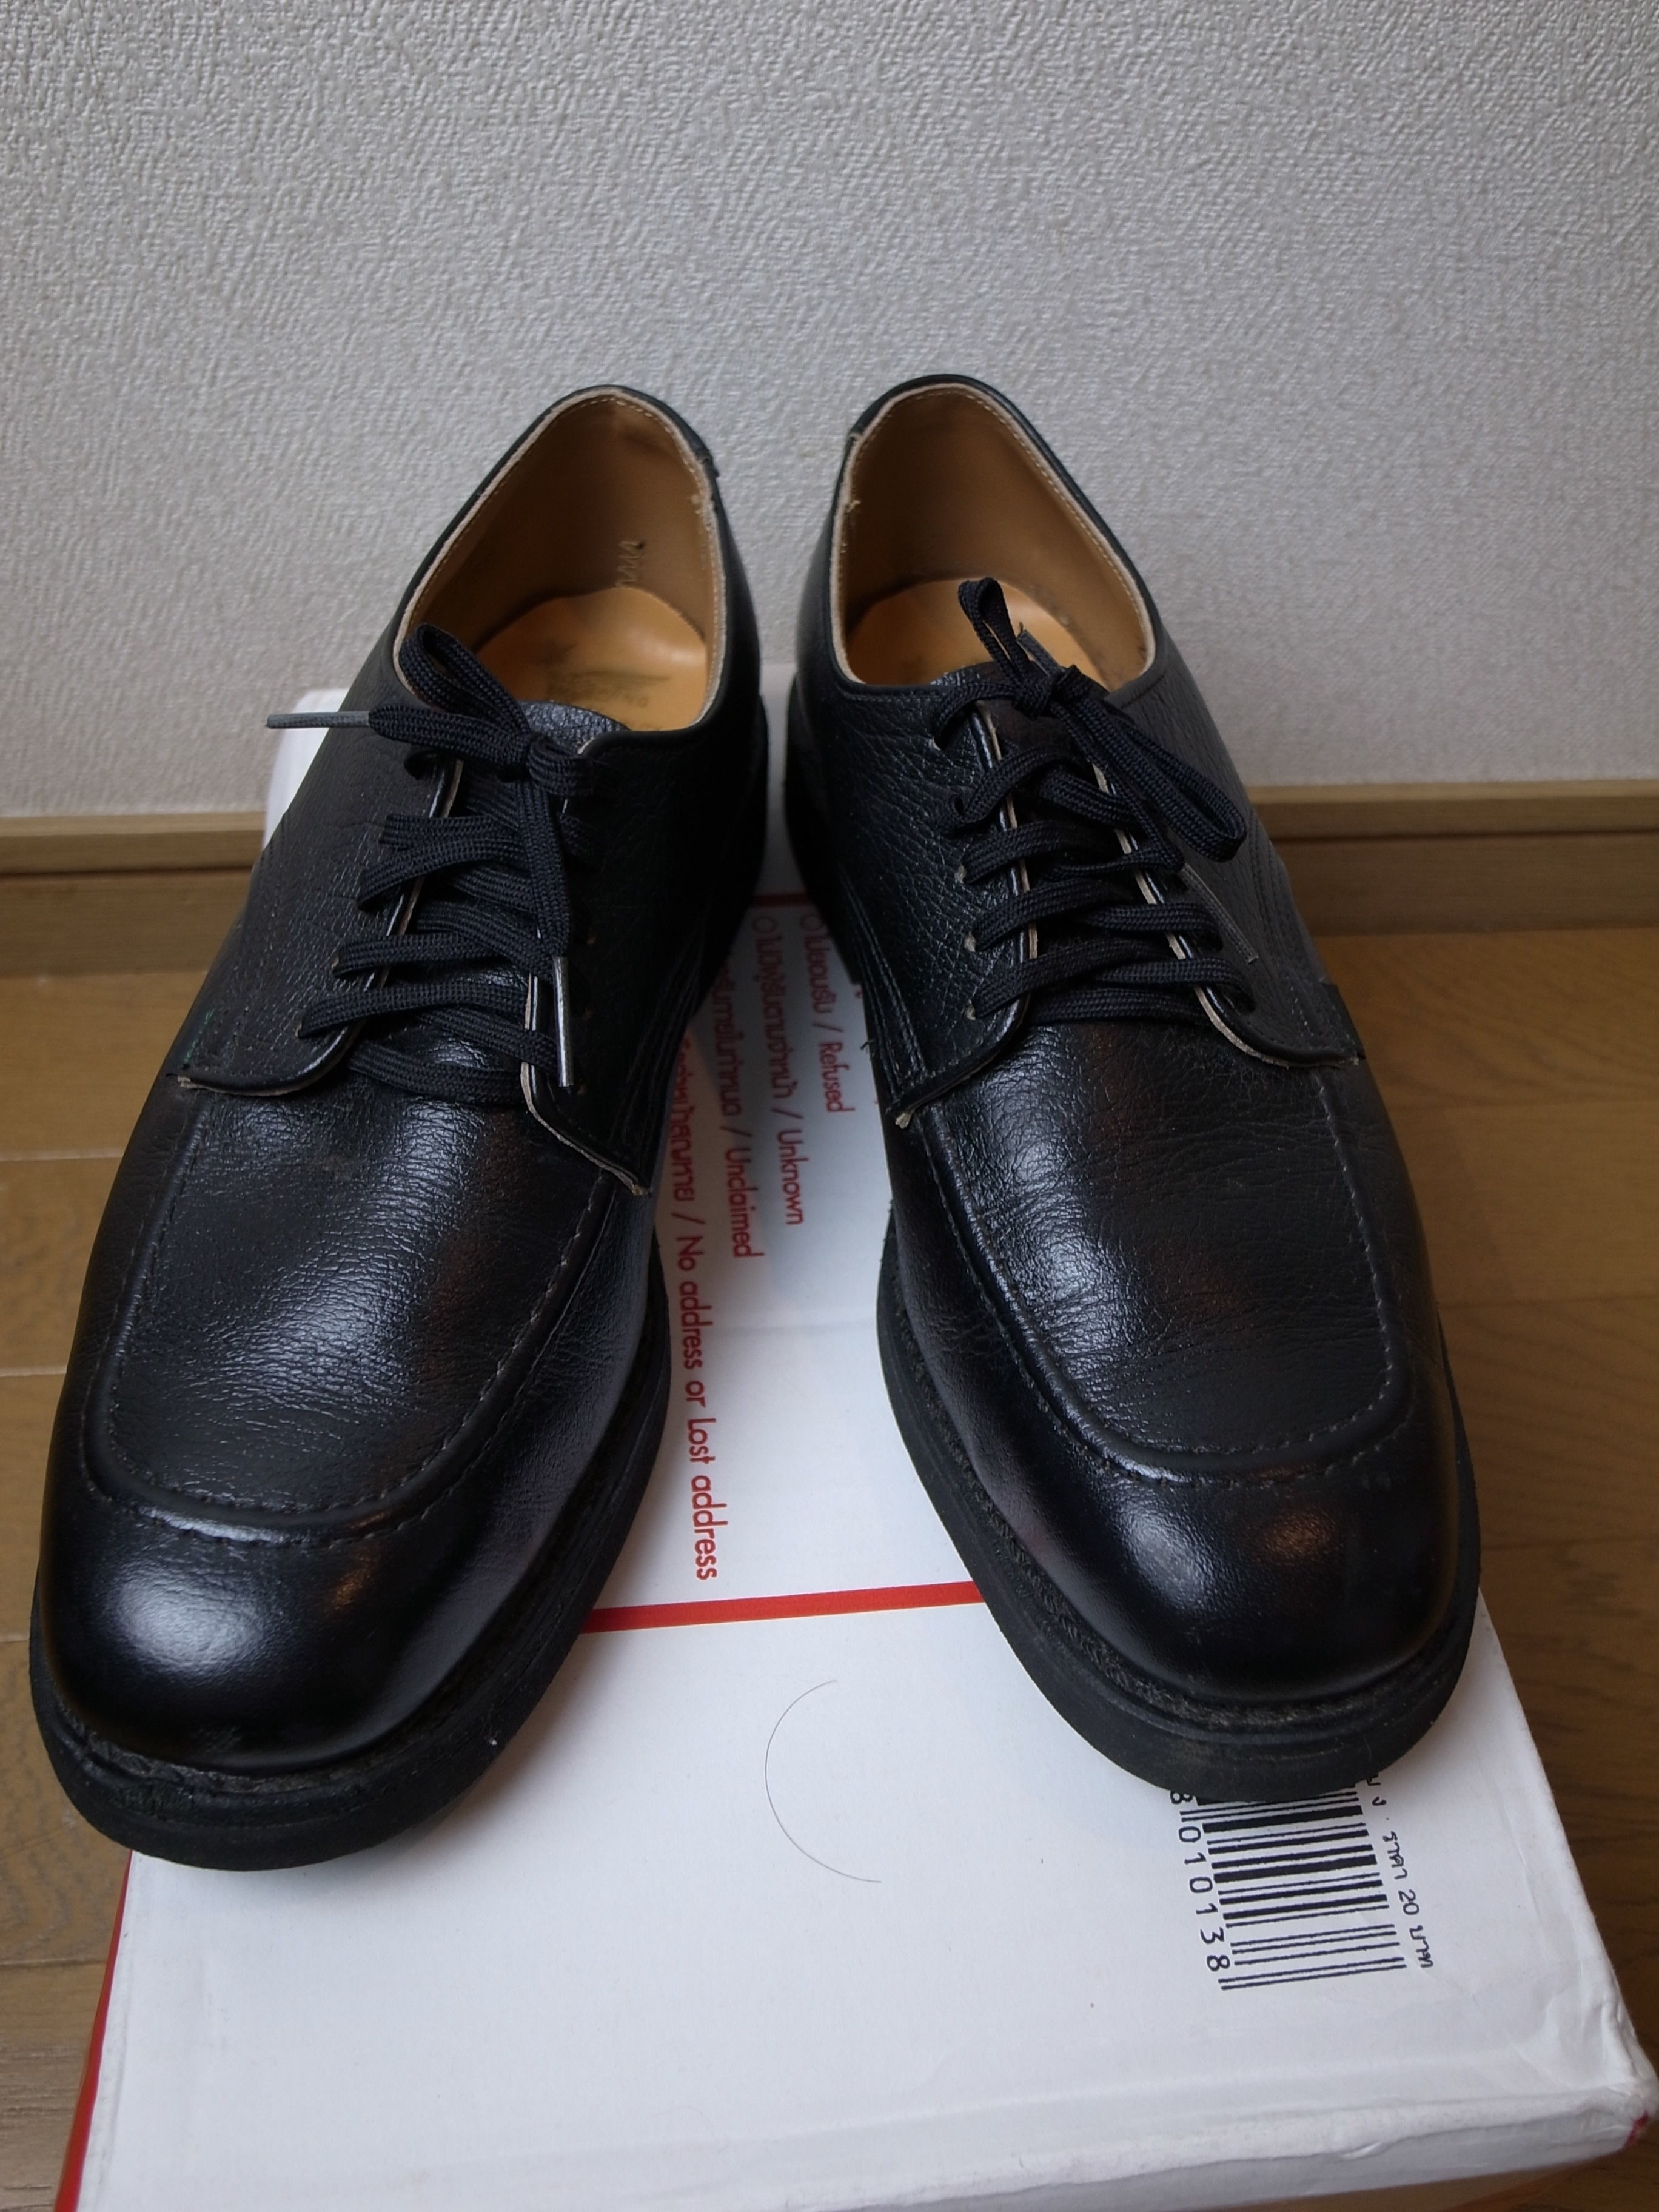 RED WING Postman shoes デッドストック サイズ7.5D